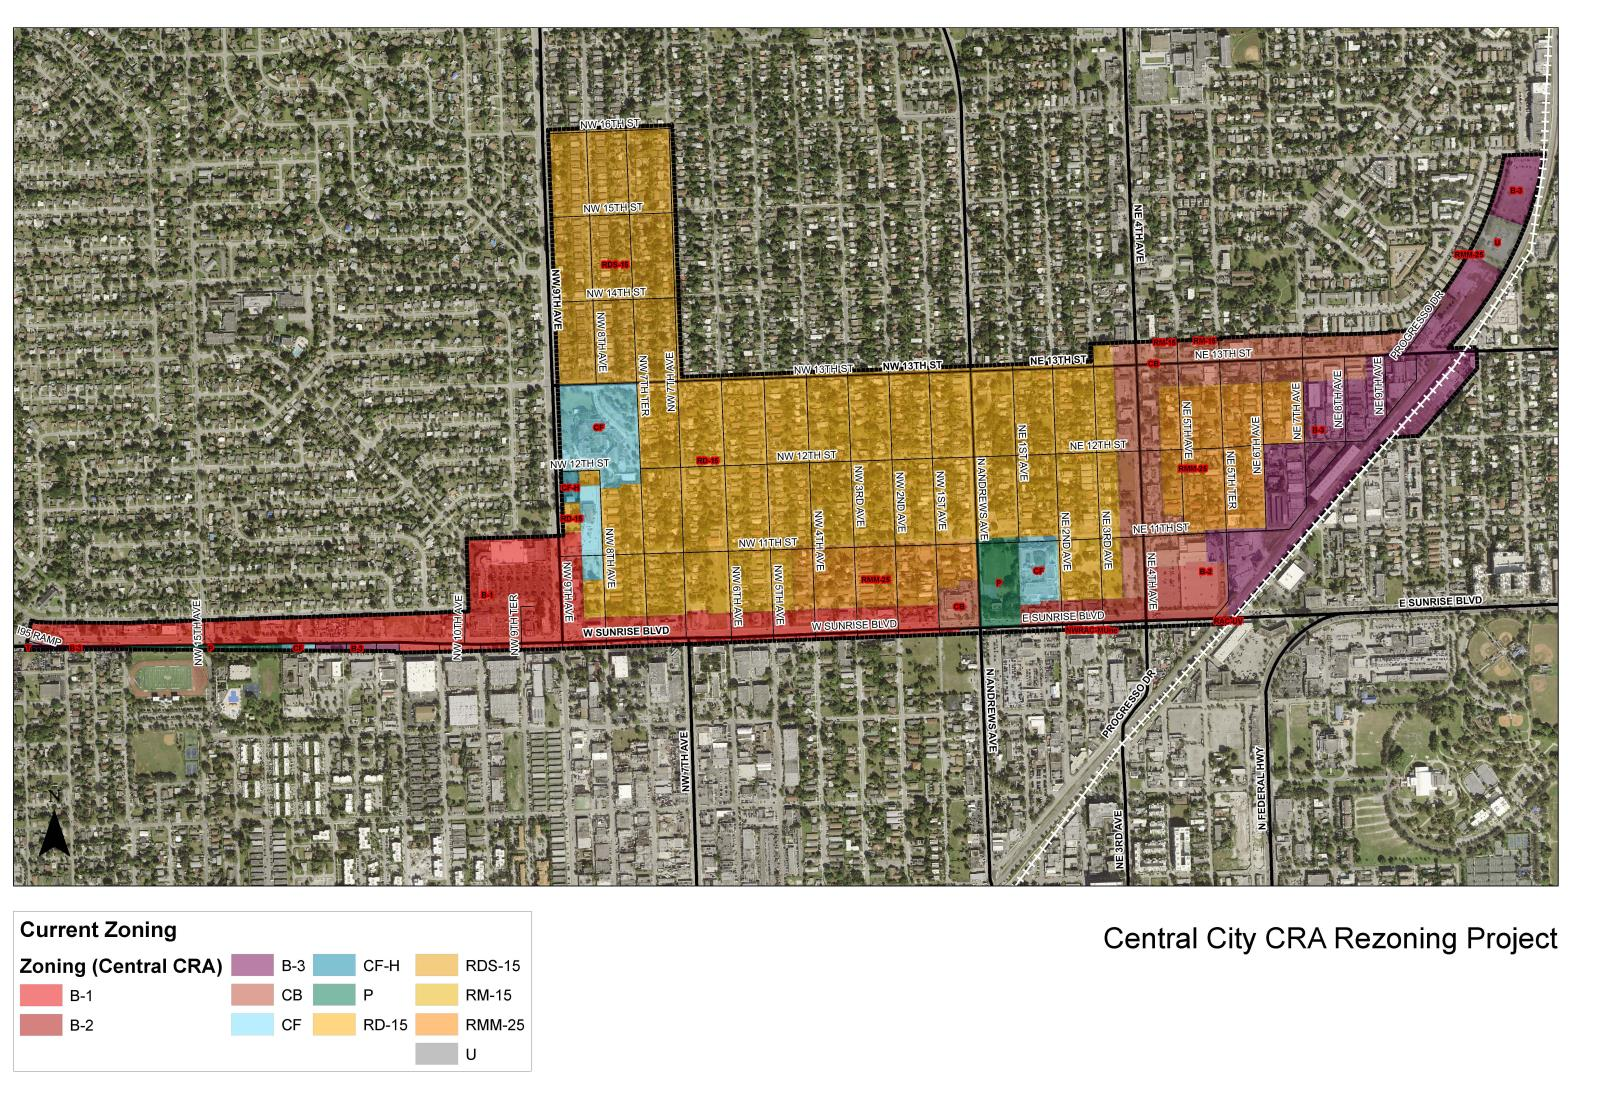 City of Fort Lauderdale, FL : Project Context, Vision, Goal City Of Sunrise Map on tiber city map, colorful city map, dunedin city map, temecula city map, lecanto city map, port st lucie city map, marco island city map, destin city map, glendale city map, fernandina beach city map, kendall city map, ocoee city map, suwannee county city map, kissimmee city map, raleigh city map, miramar city map, belle isle city map, dunnellon city map, alpharetta city map, seminole city map,